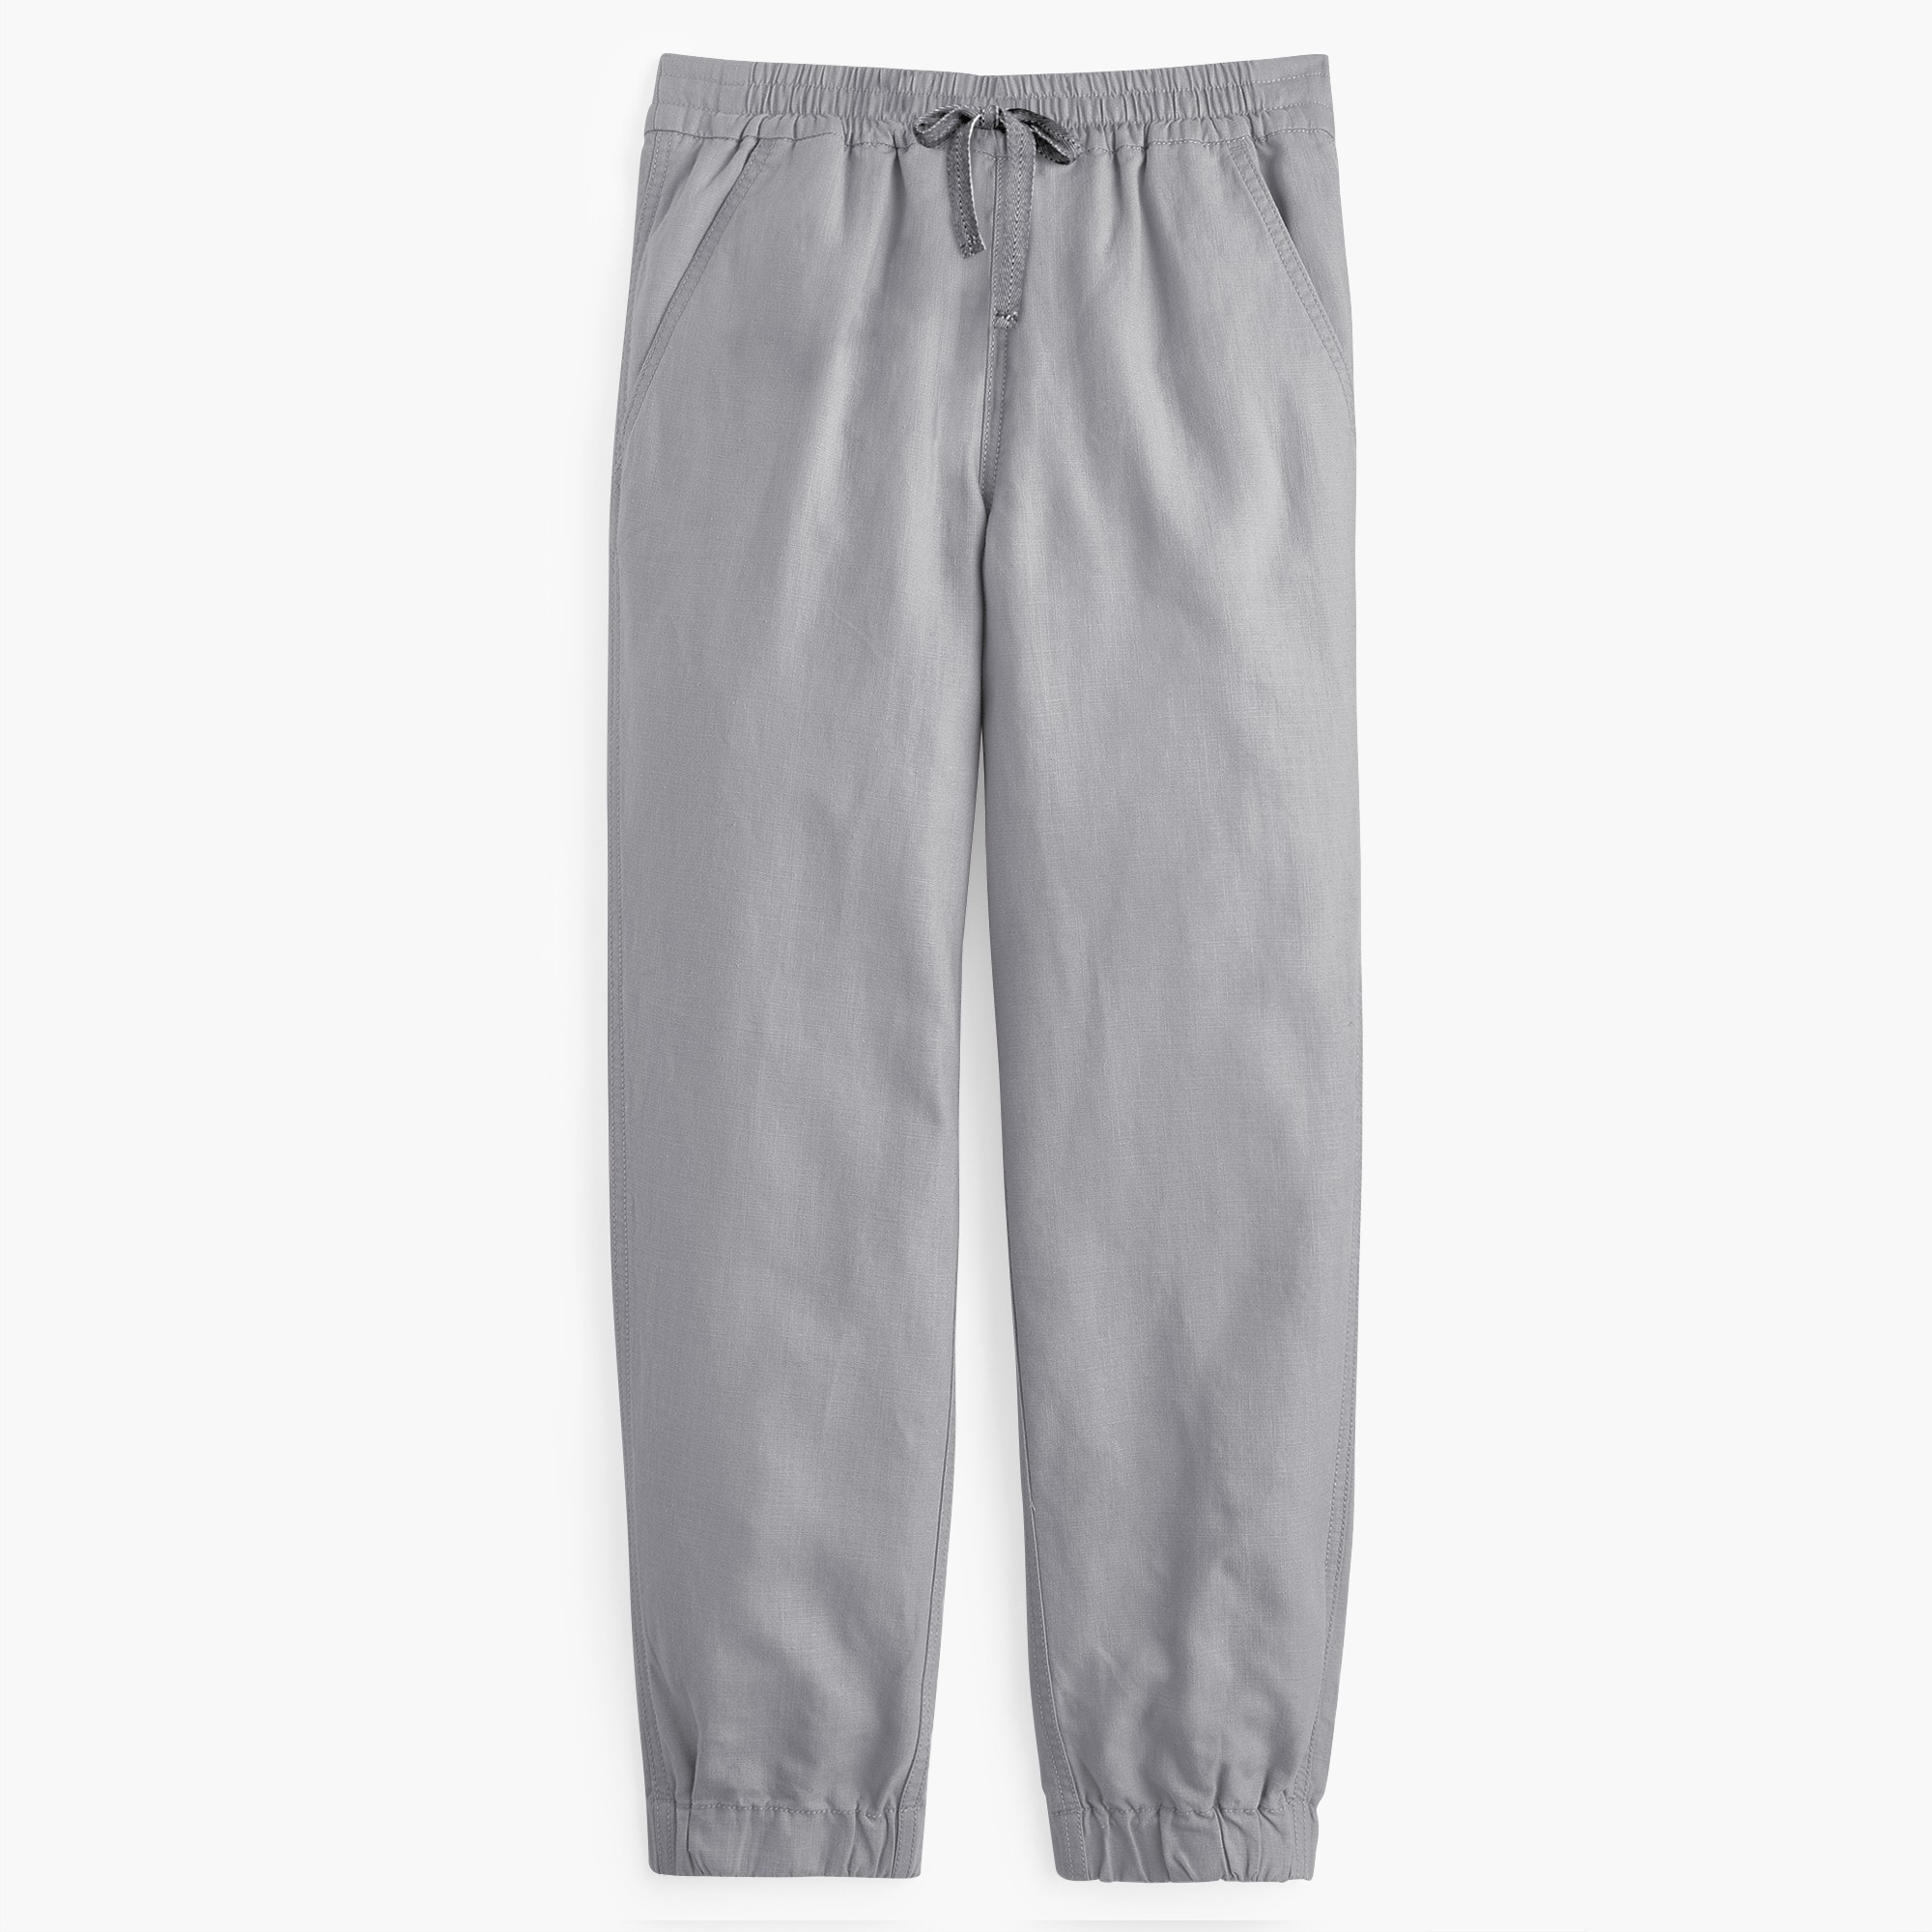 Point Sur seaside pant in linen